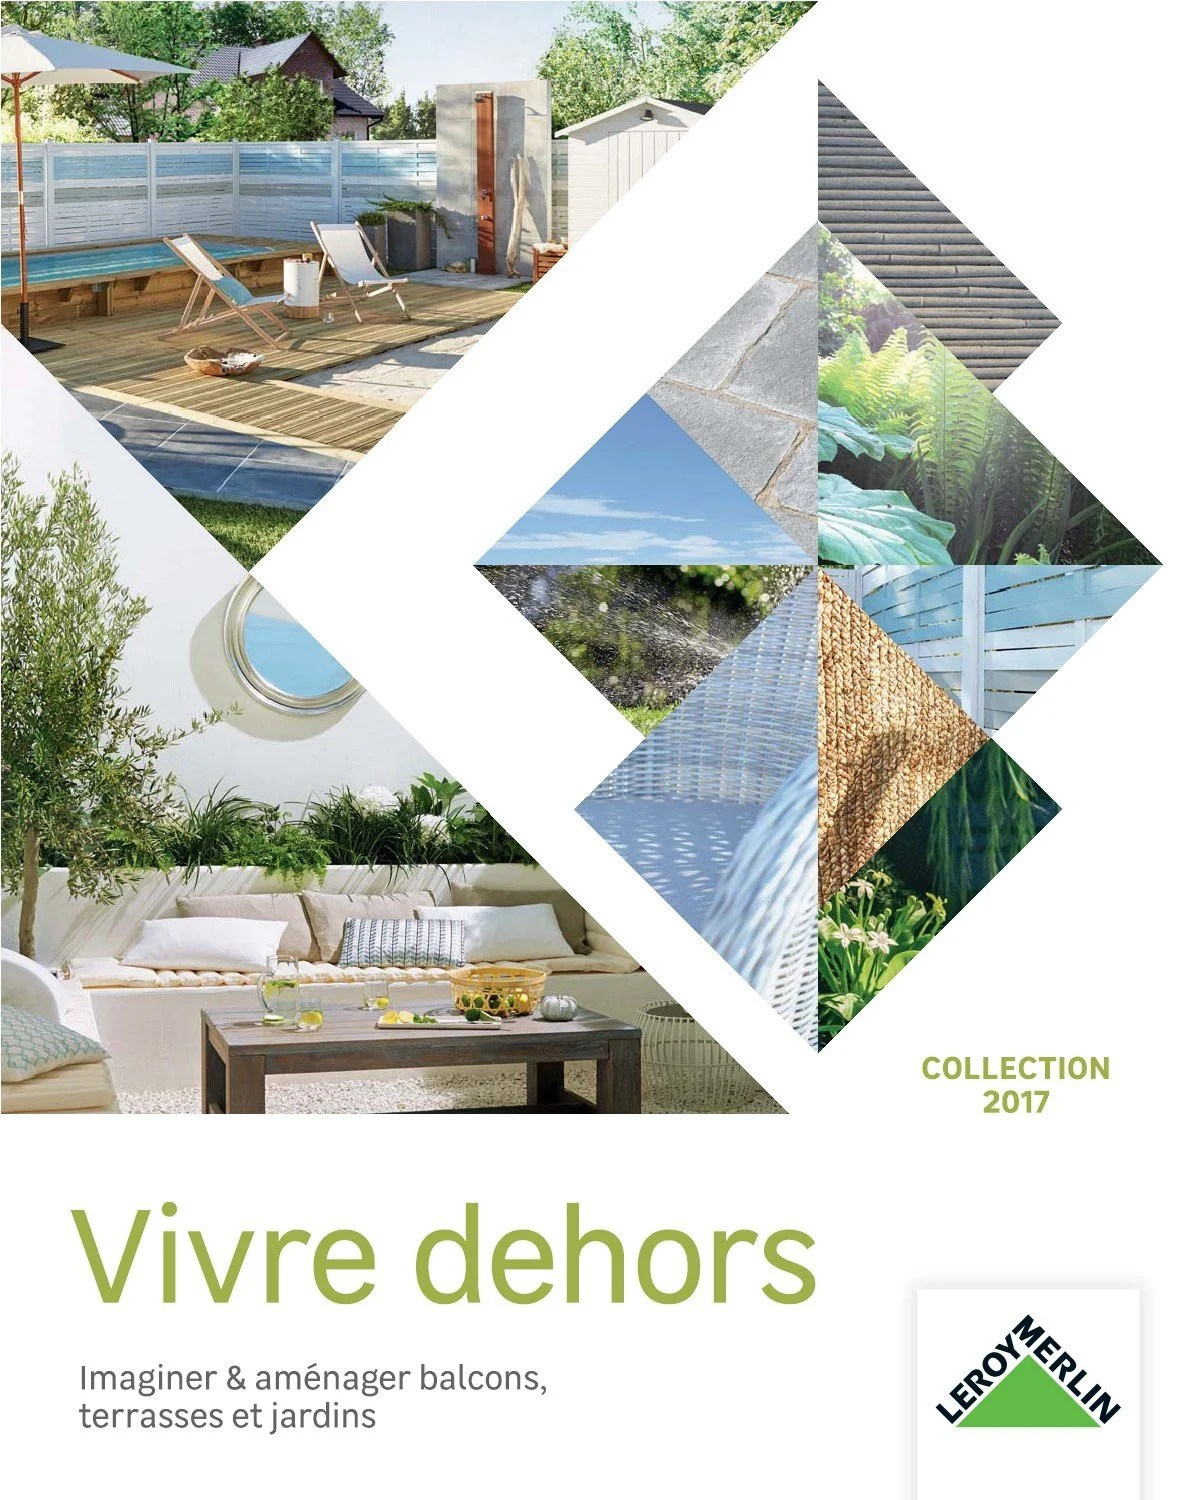 Leroy Merlin Mulhouse Vivre Dehors Collection 2017